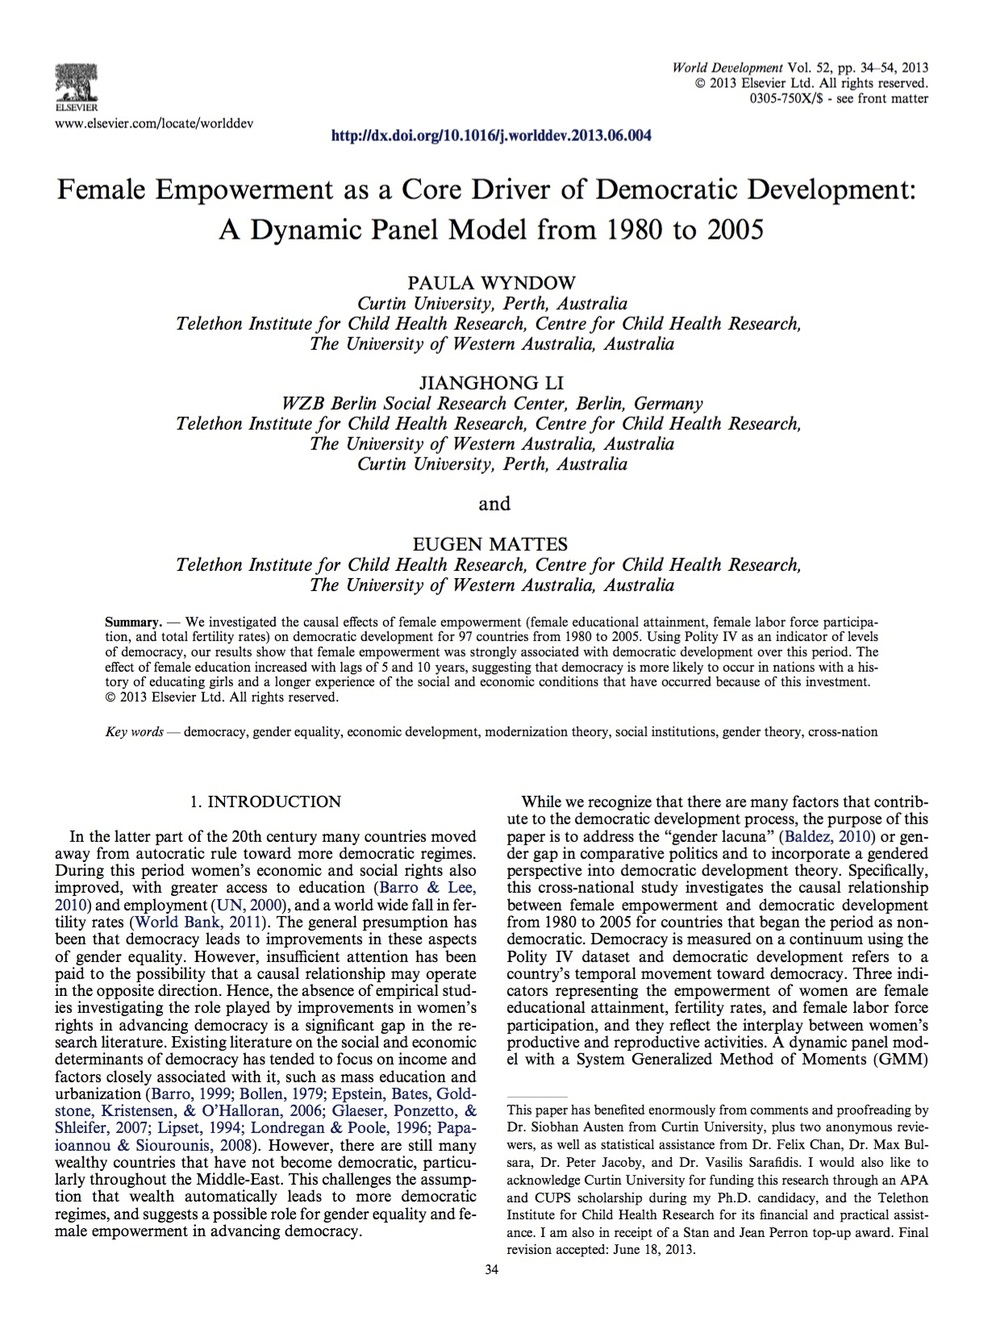 Female Empower as a Core Driver of Democratic Development: A Dynamic Panel Model from 1990 to 2005